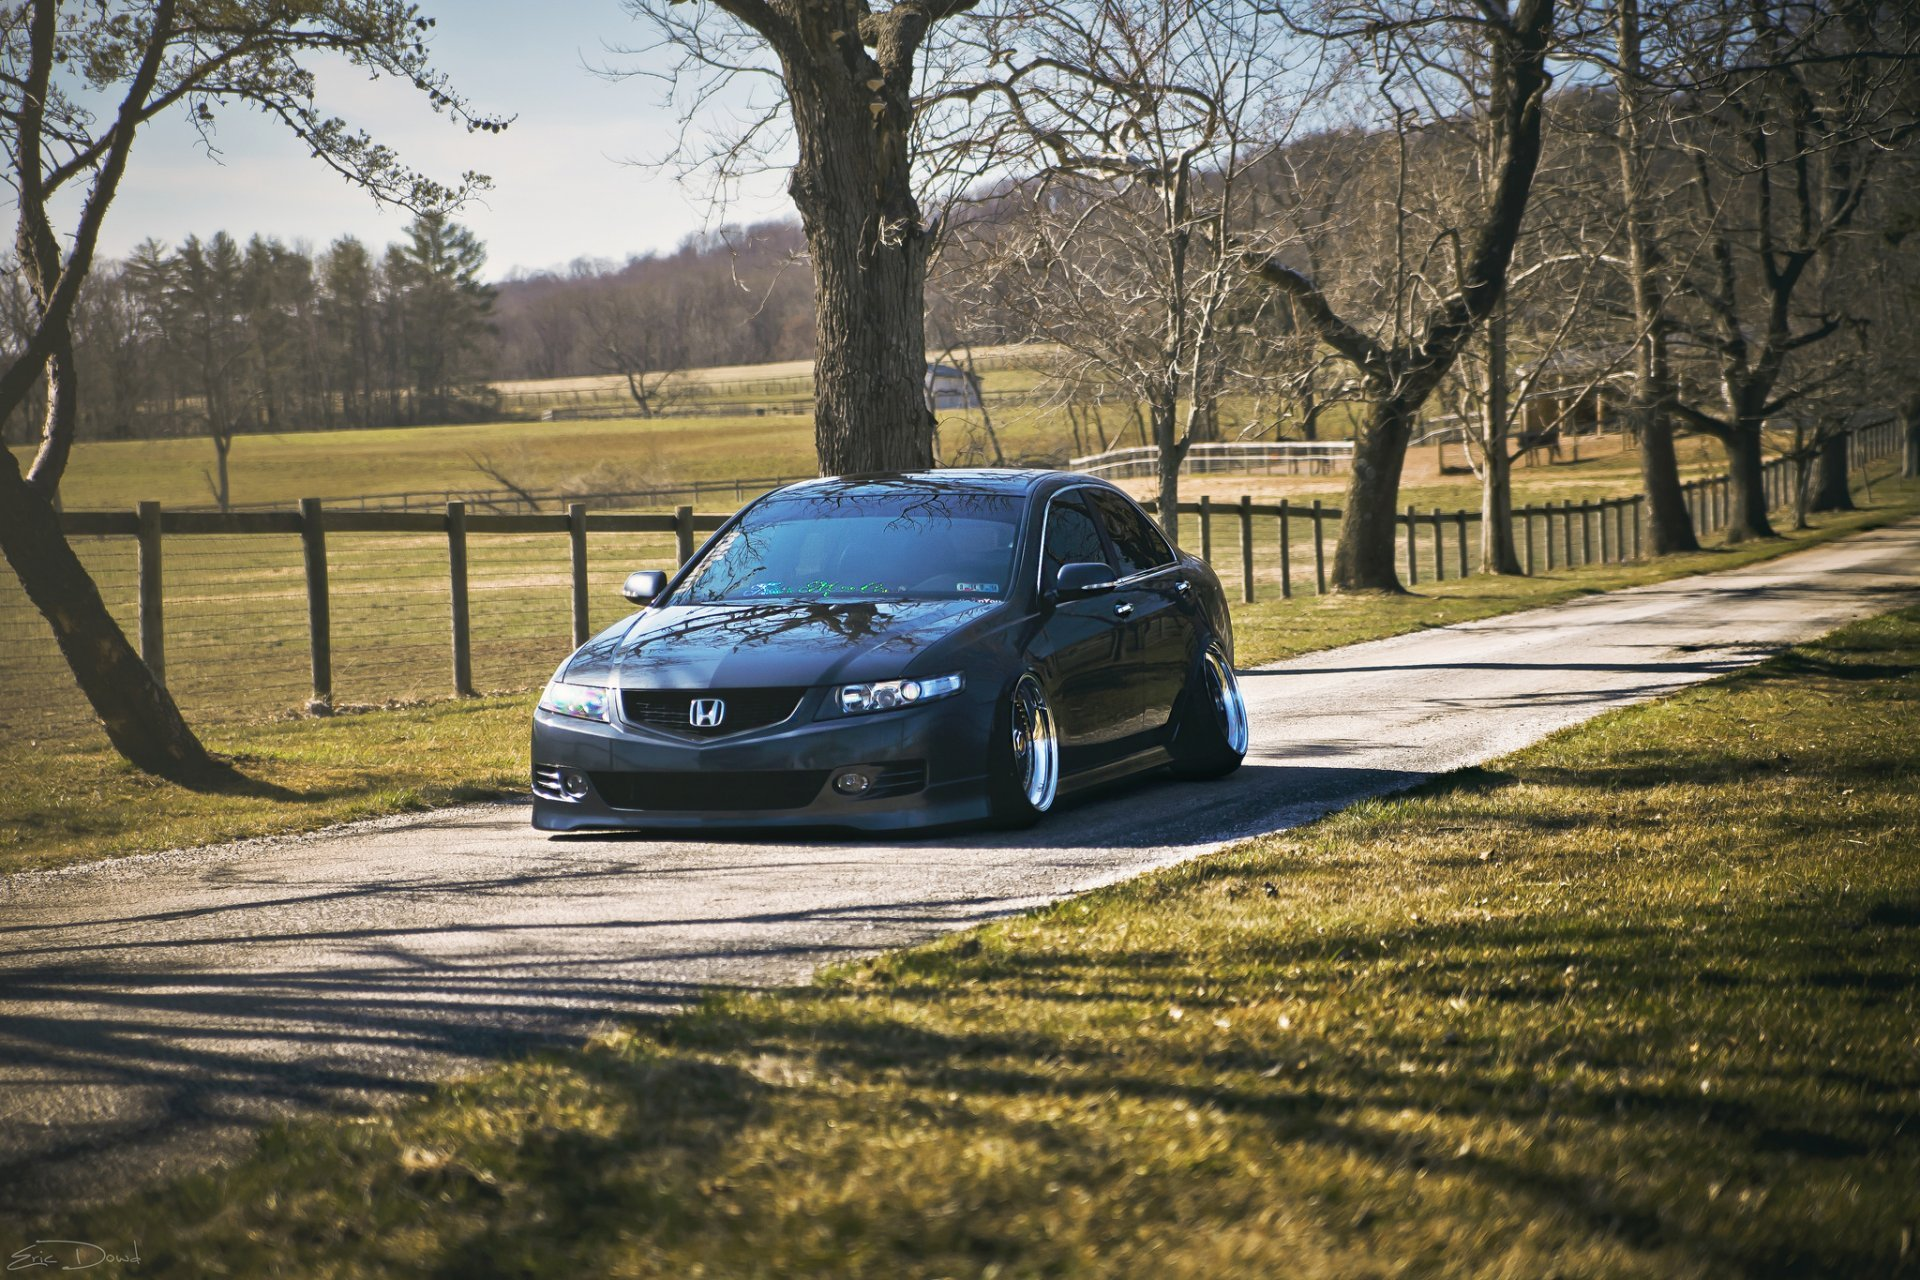 1920x1280 - Acura TSX Wallpapers 10